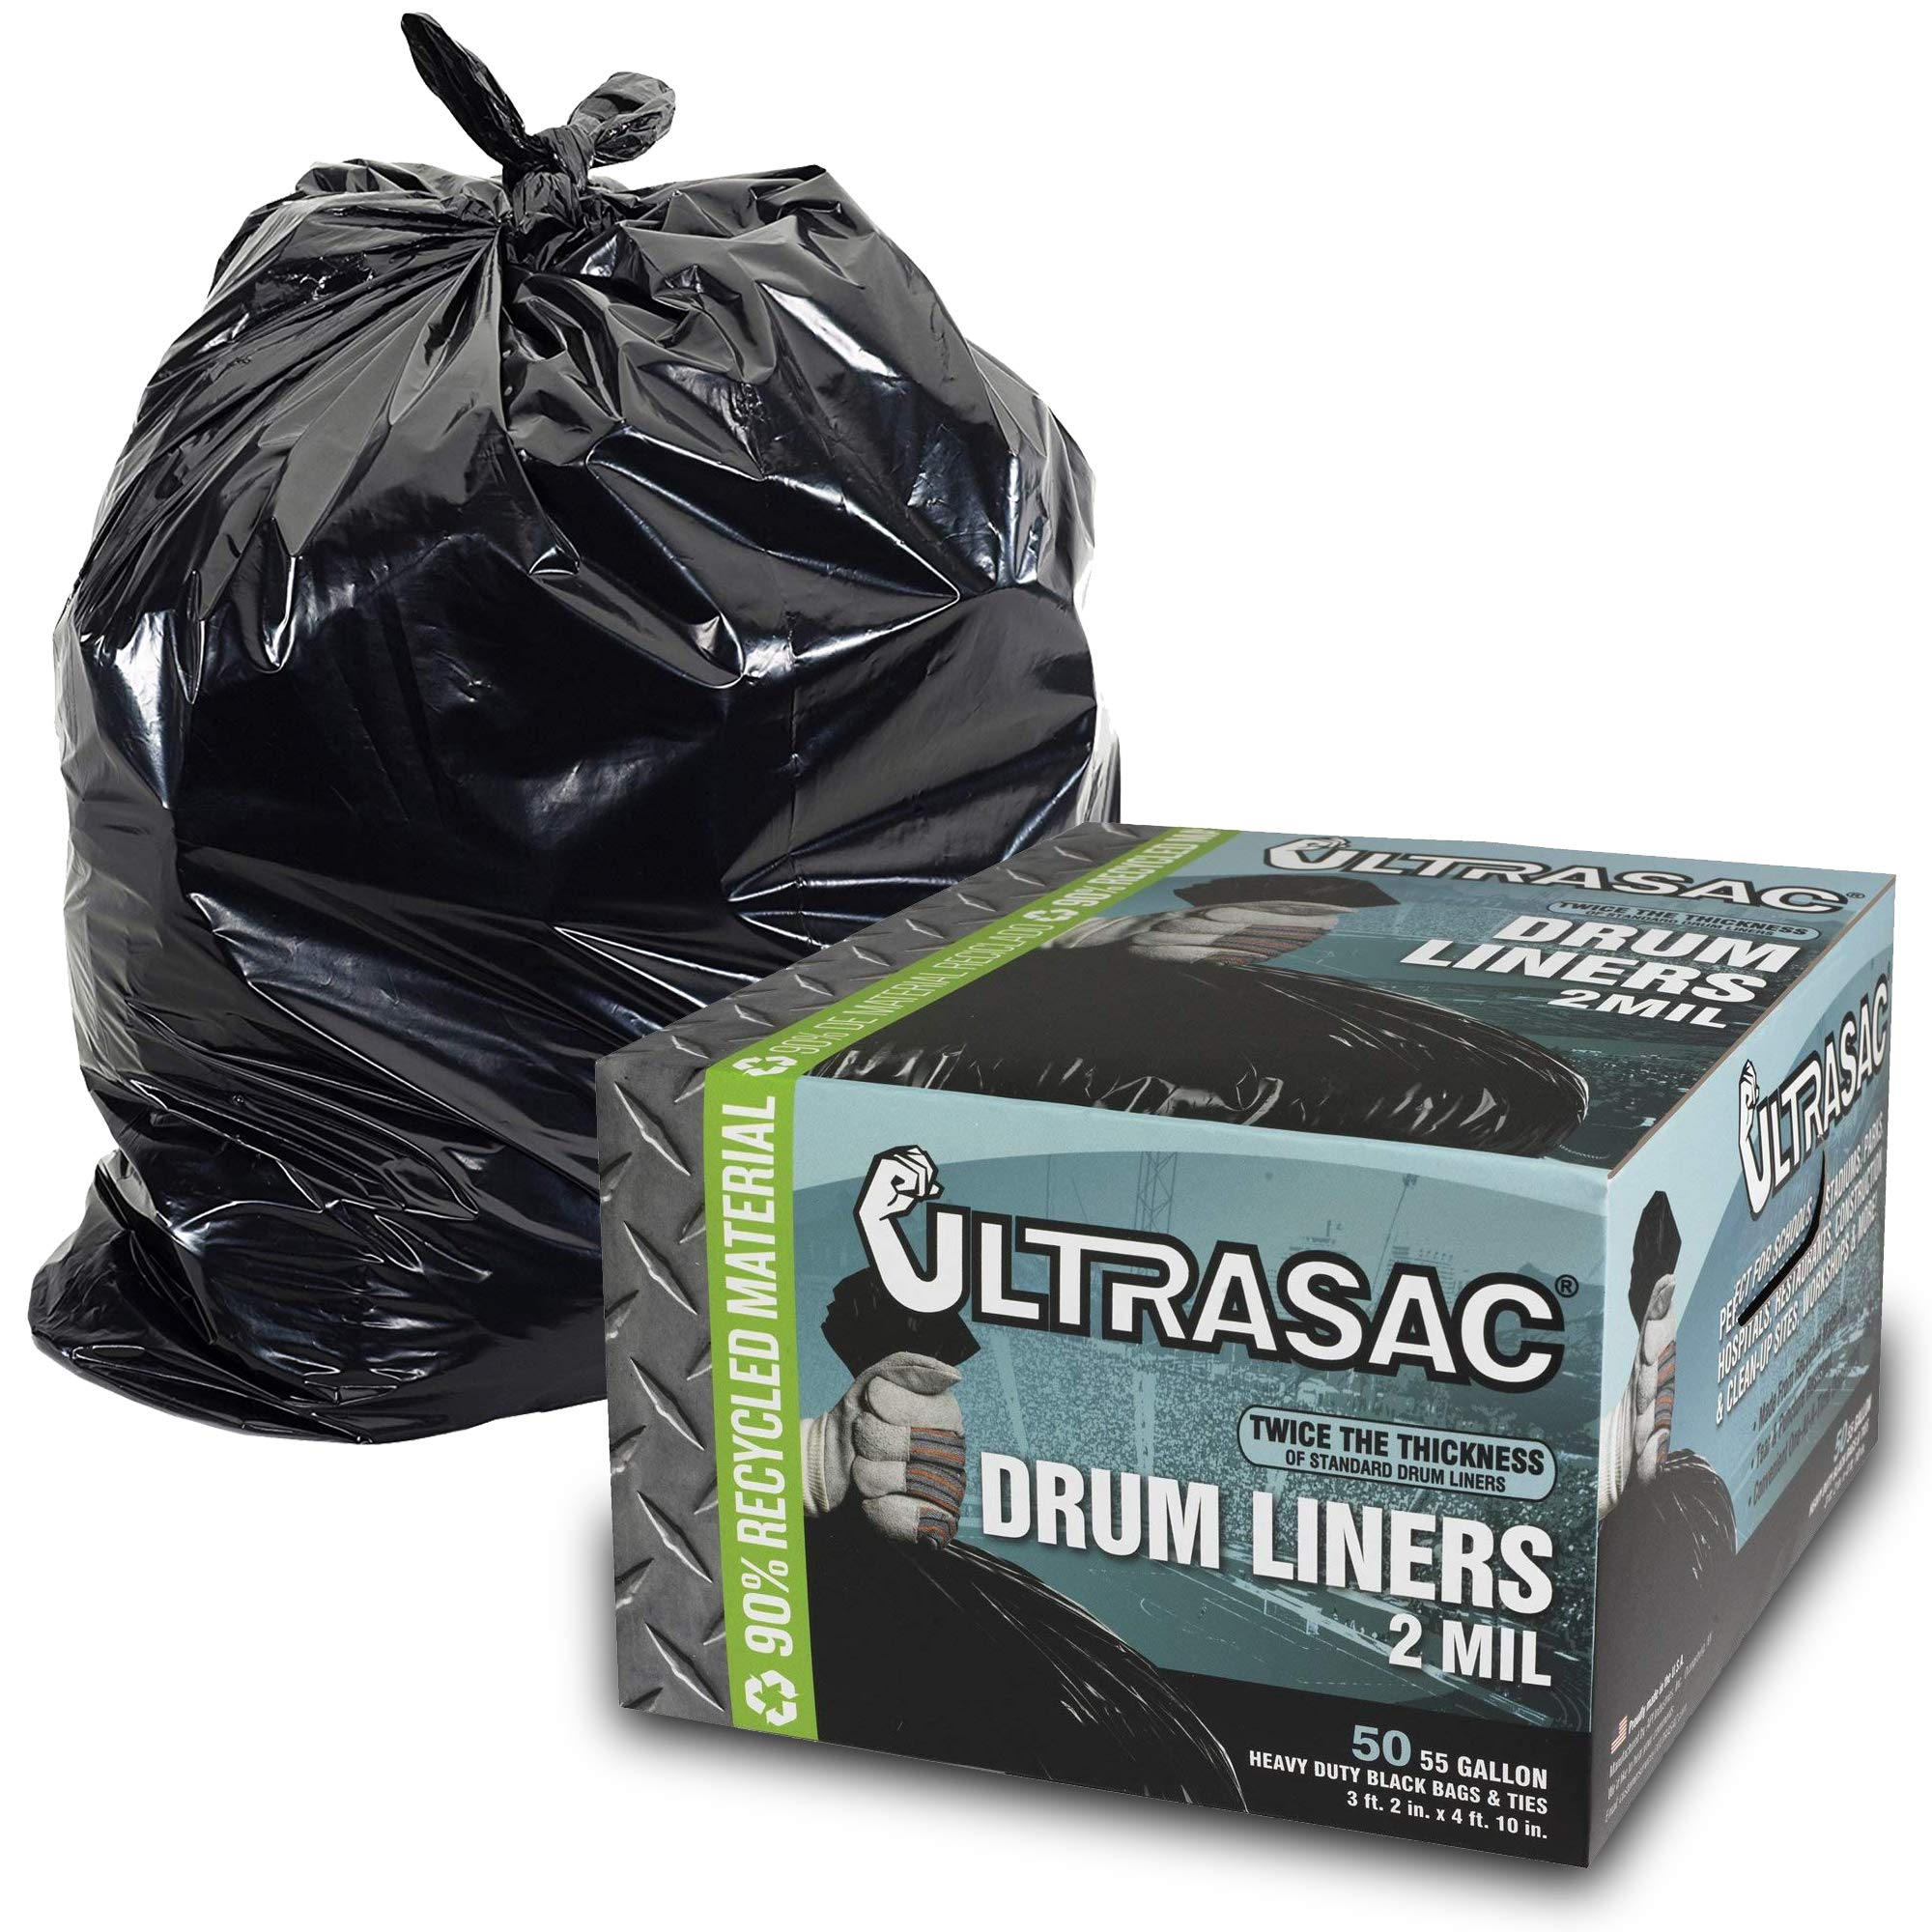 Aluf Plastics Heavy Duty 55 Gallon Trash Bags - (Large 50 Pack /w Ties) - 2 MIL Industrial Strength Plastic Drum Liners 38' x 58' Professional Black Garbage Bags for Construction, Contractors, Leaf, Yard - 796695 by Aluf Plastics